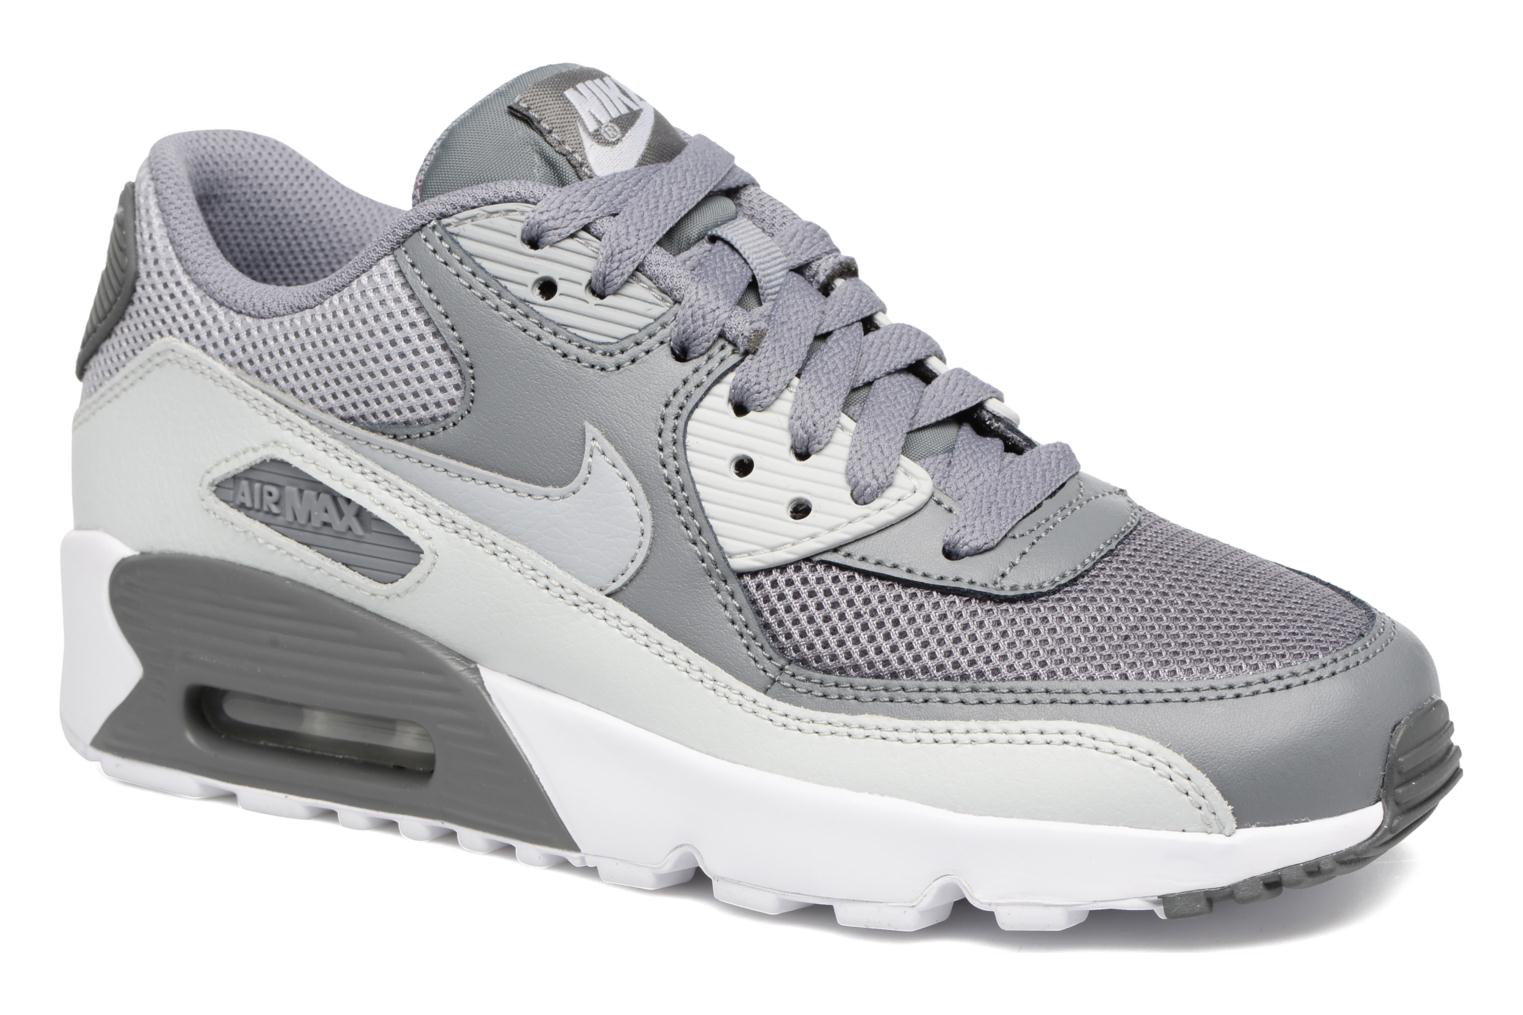 NIKE AIR MAX 90 MESH (GS) Cool Grey/Wolf Grey-Pure Platinum-White